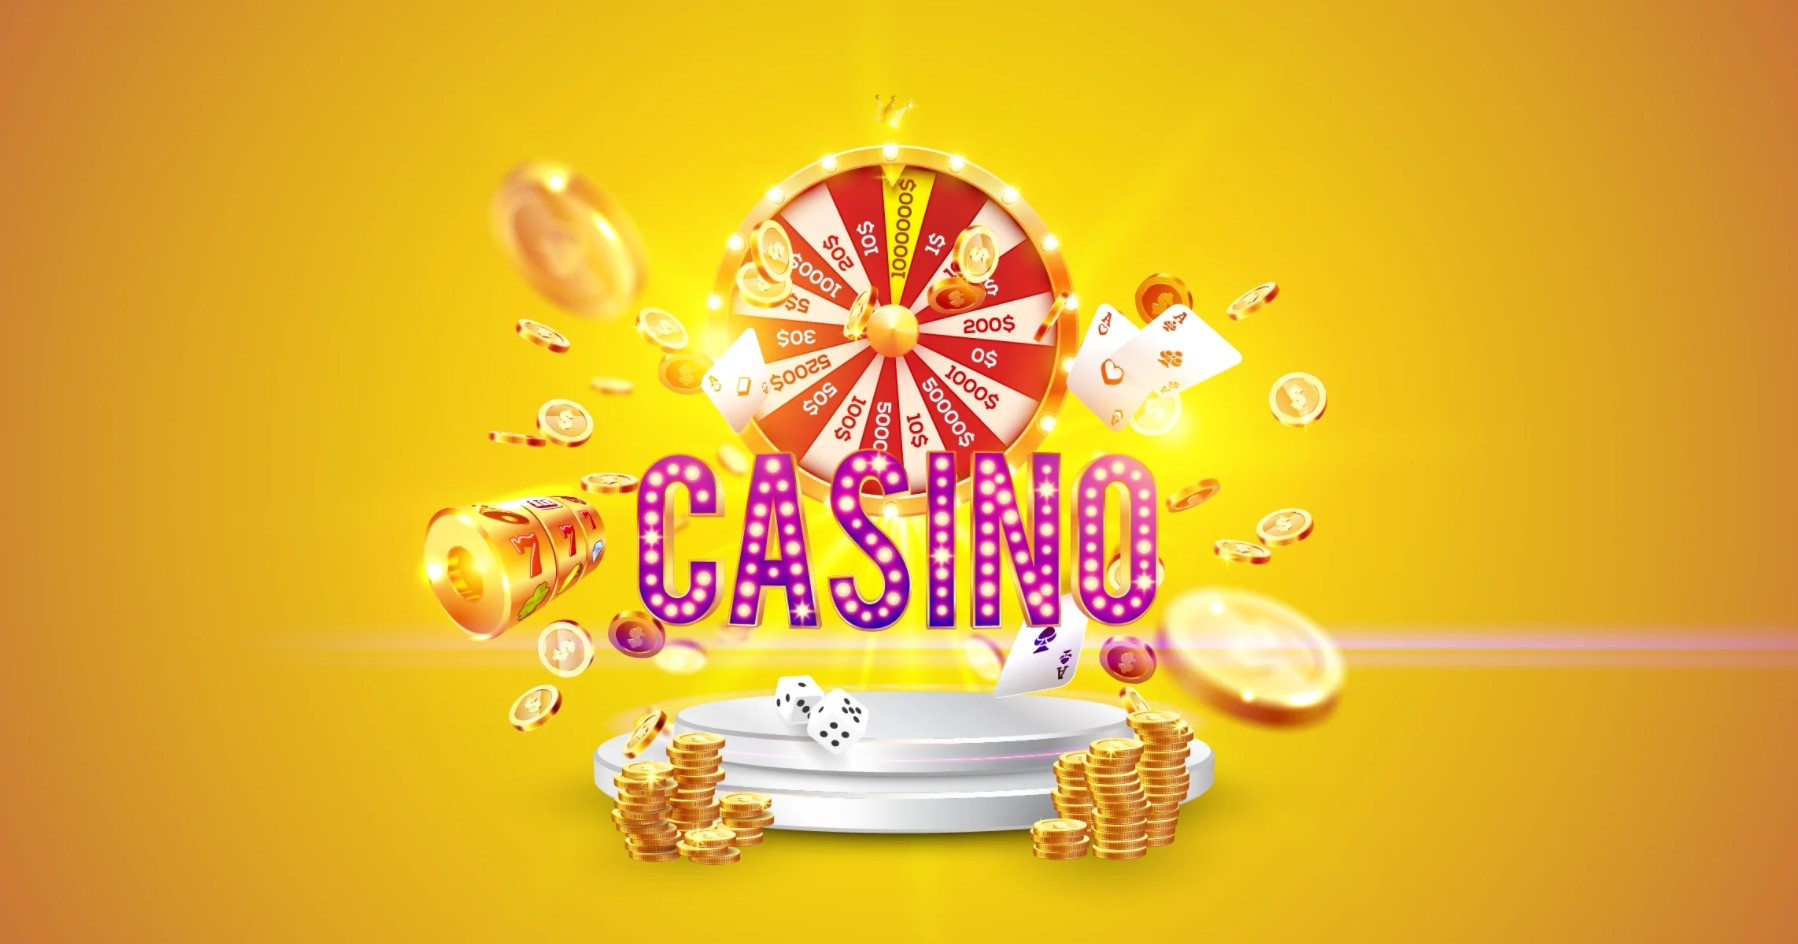 Take a peek inside to learn the best online casino games to start with at Joe Fortune